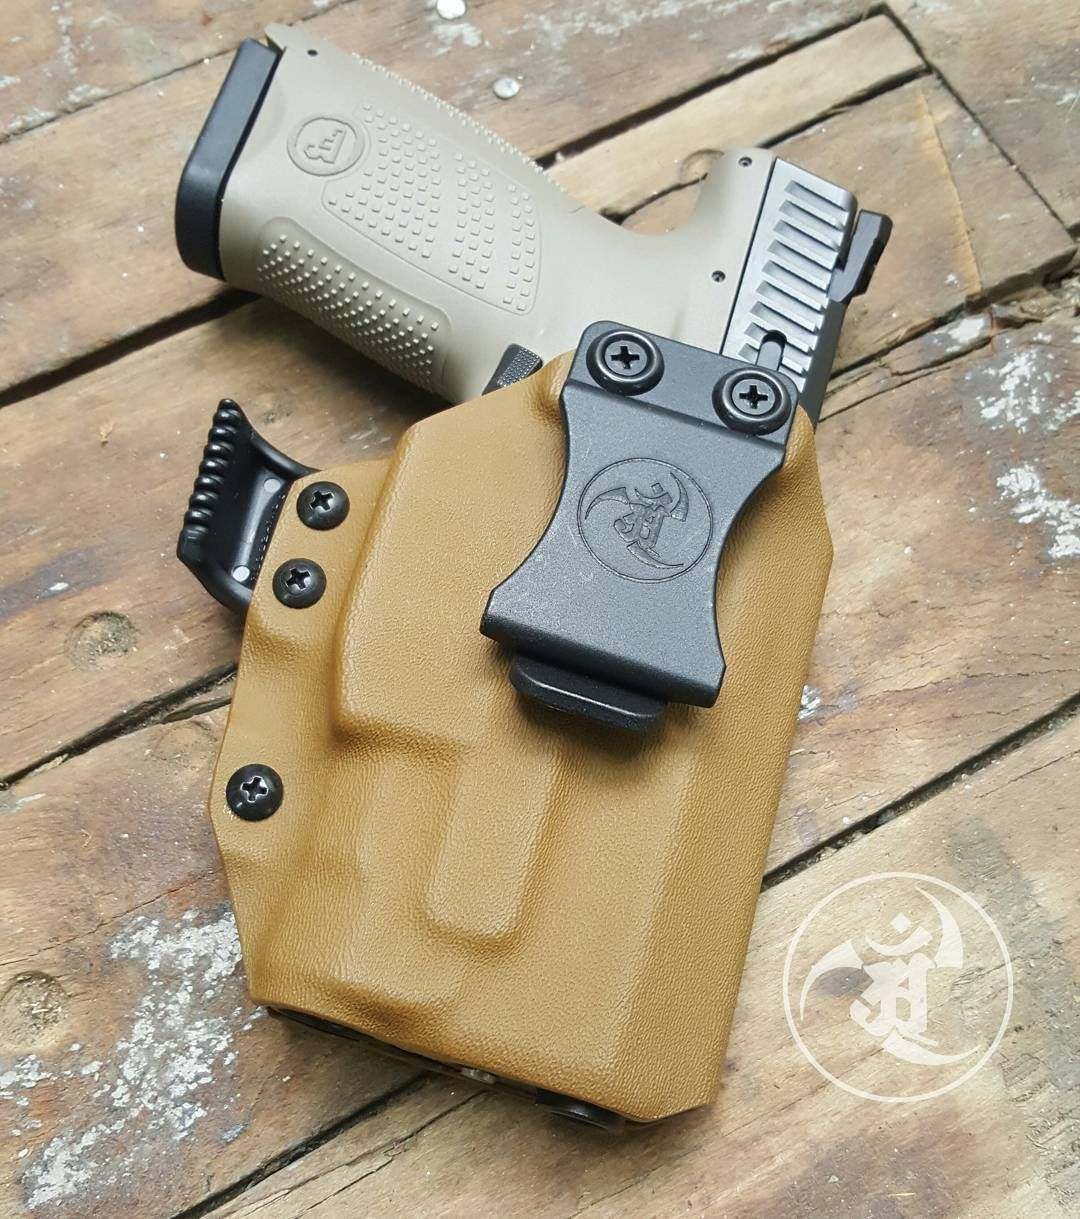 CZ P10C with @inforce01 APLc dressed in Coyote IWB holster with RCS